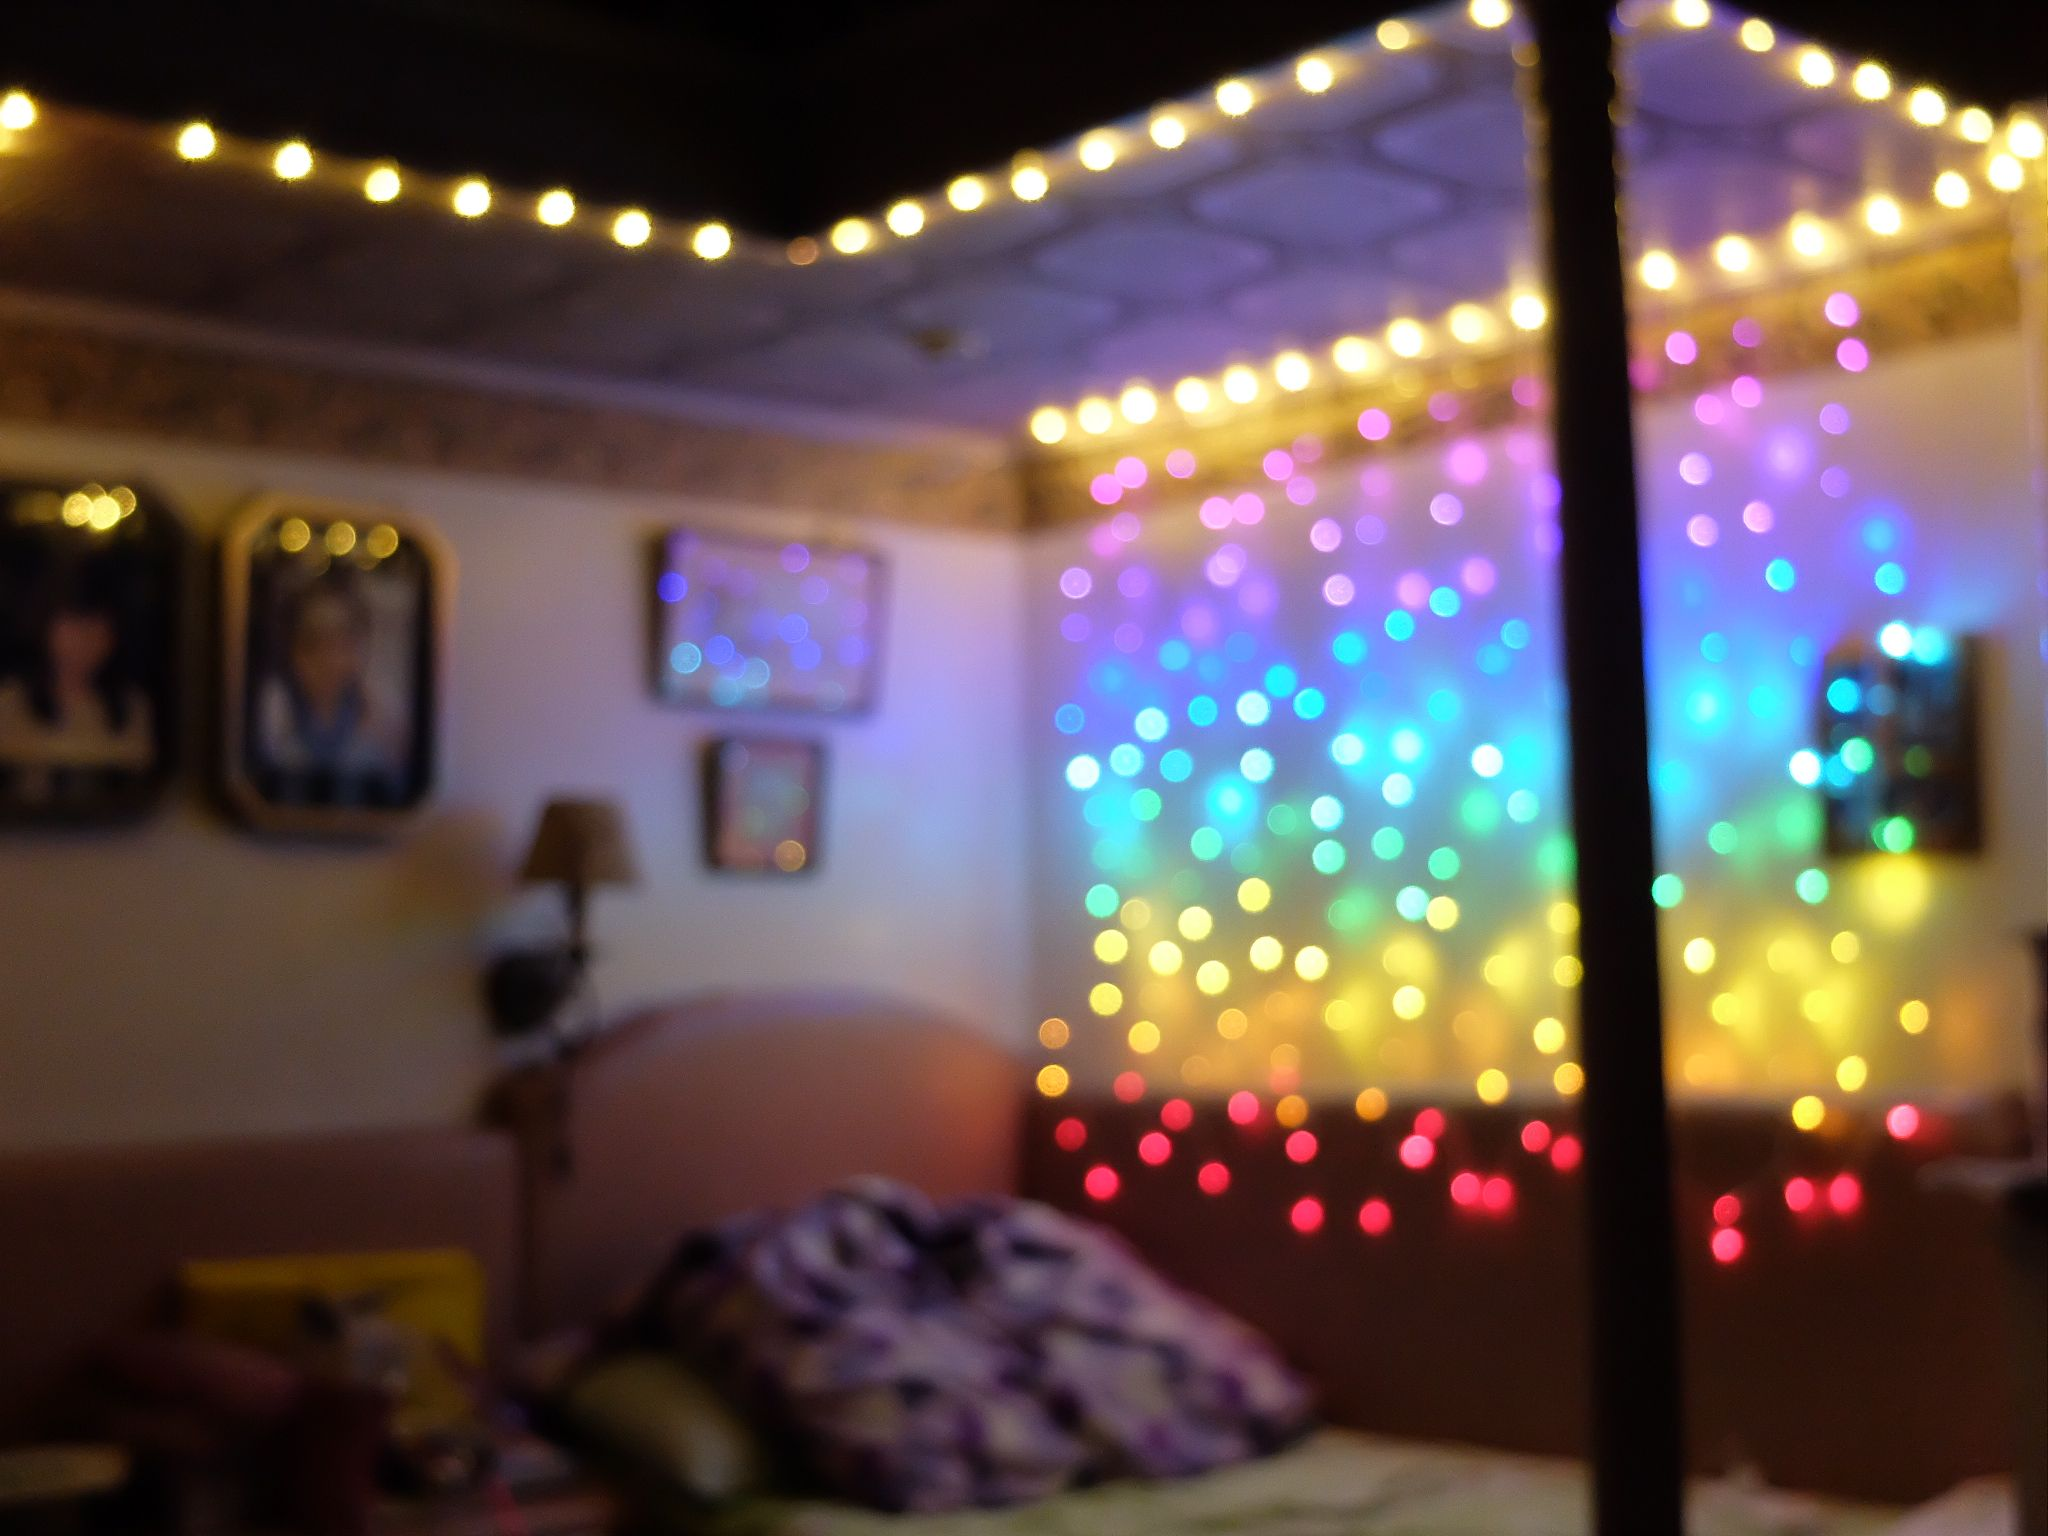 Bedroom Goals Achieved I Decorated My Room Using Rainbow Curtain - Curtain lights for bedroom